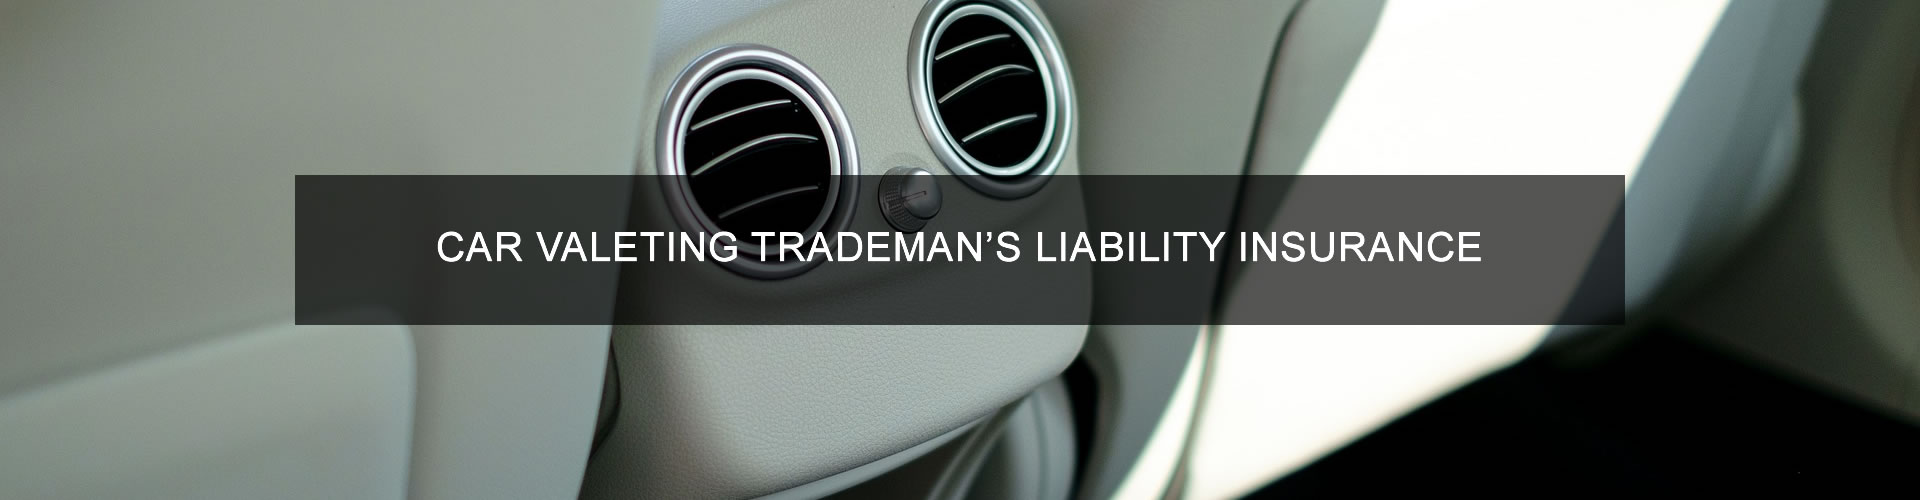 Car Valeting Tradesman's Liability Insurance